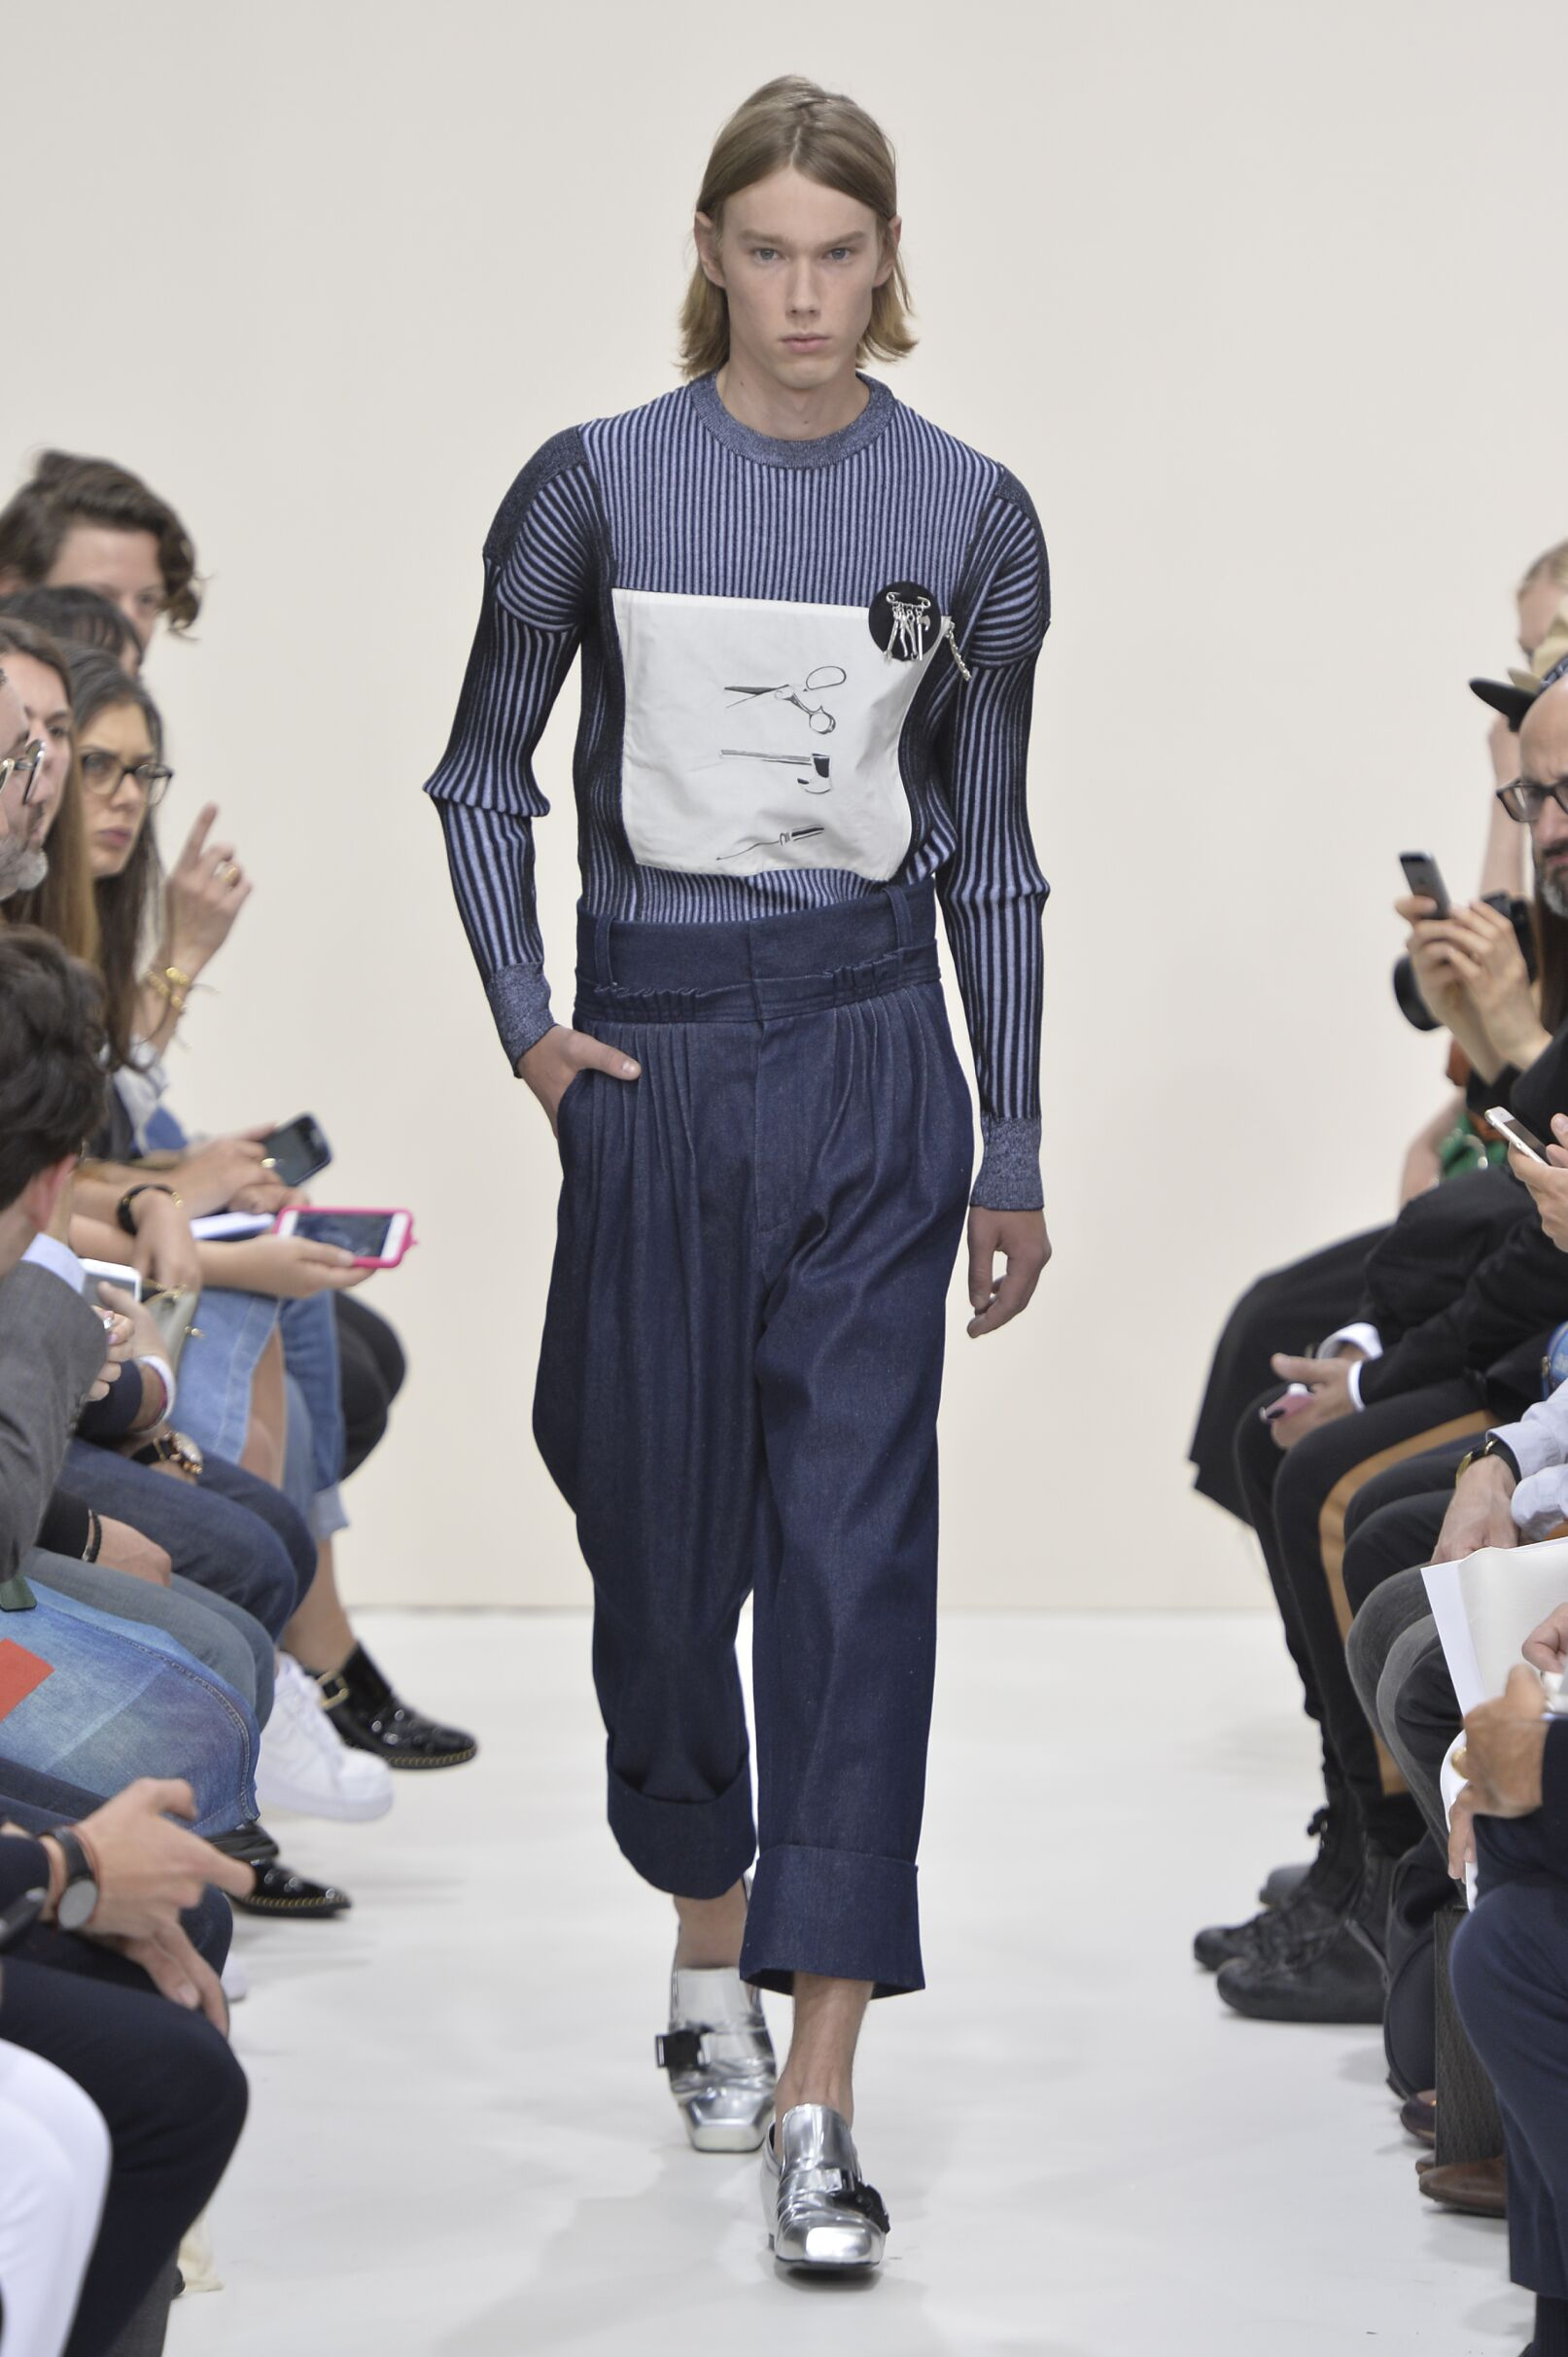 Spring Summer 2016 Fashion Collection J.W. Anderson